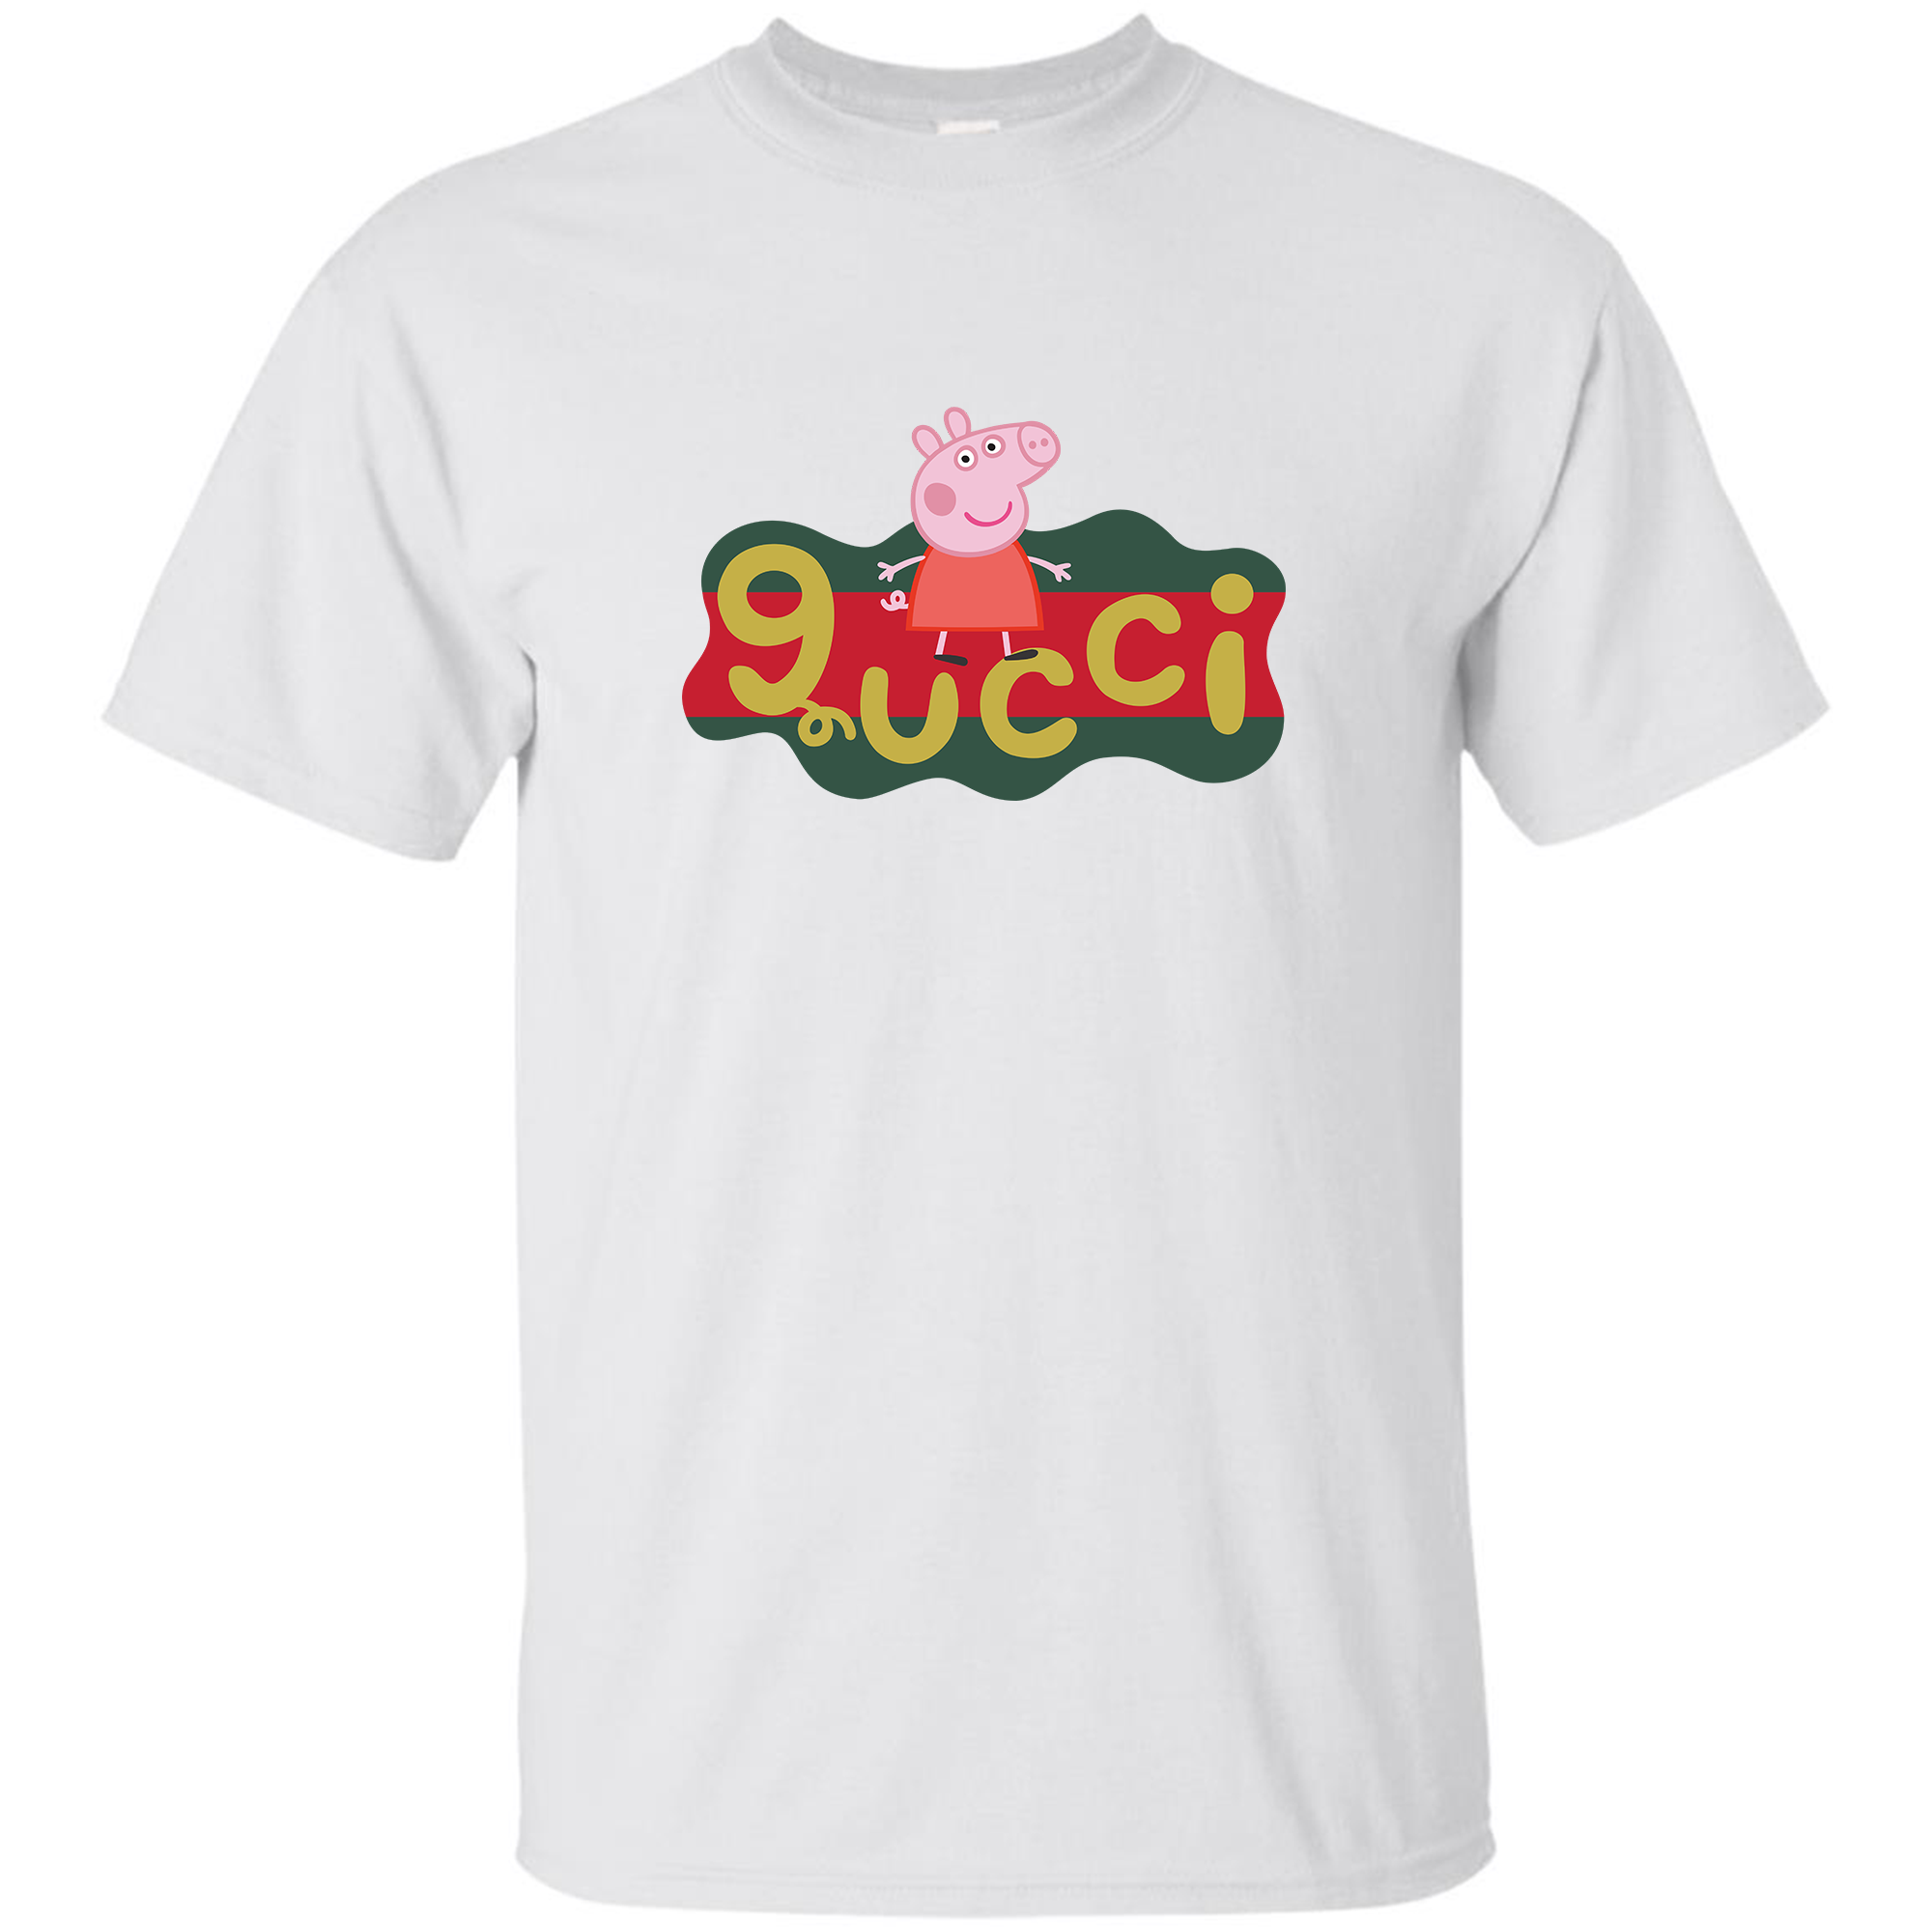 Parody Peppa Pig X Gucci Logo Replica T-shirt Print By Clothenvy